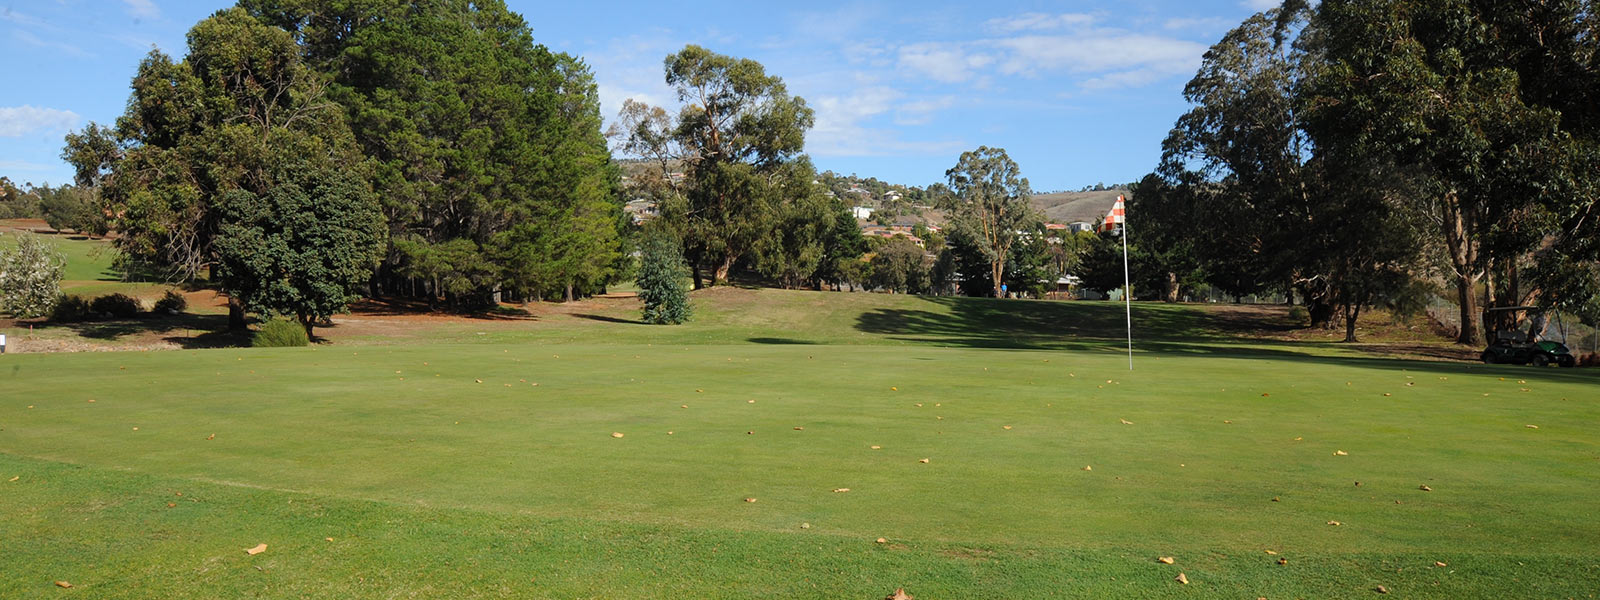 Hole 14 - Green Back View